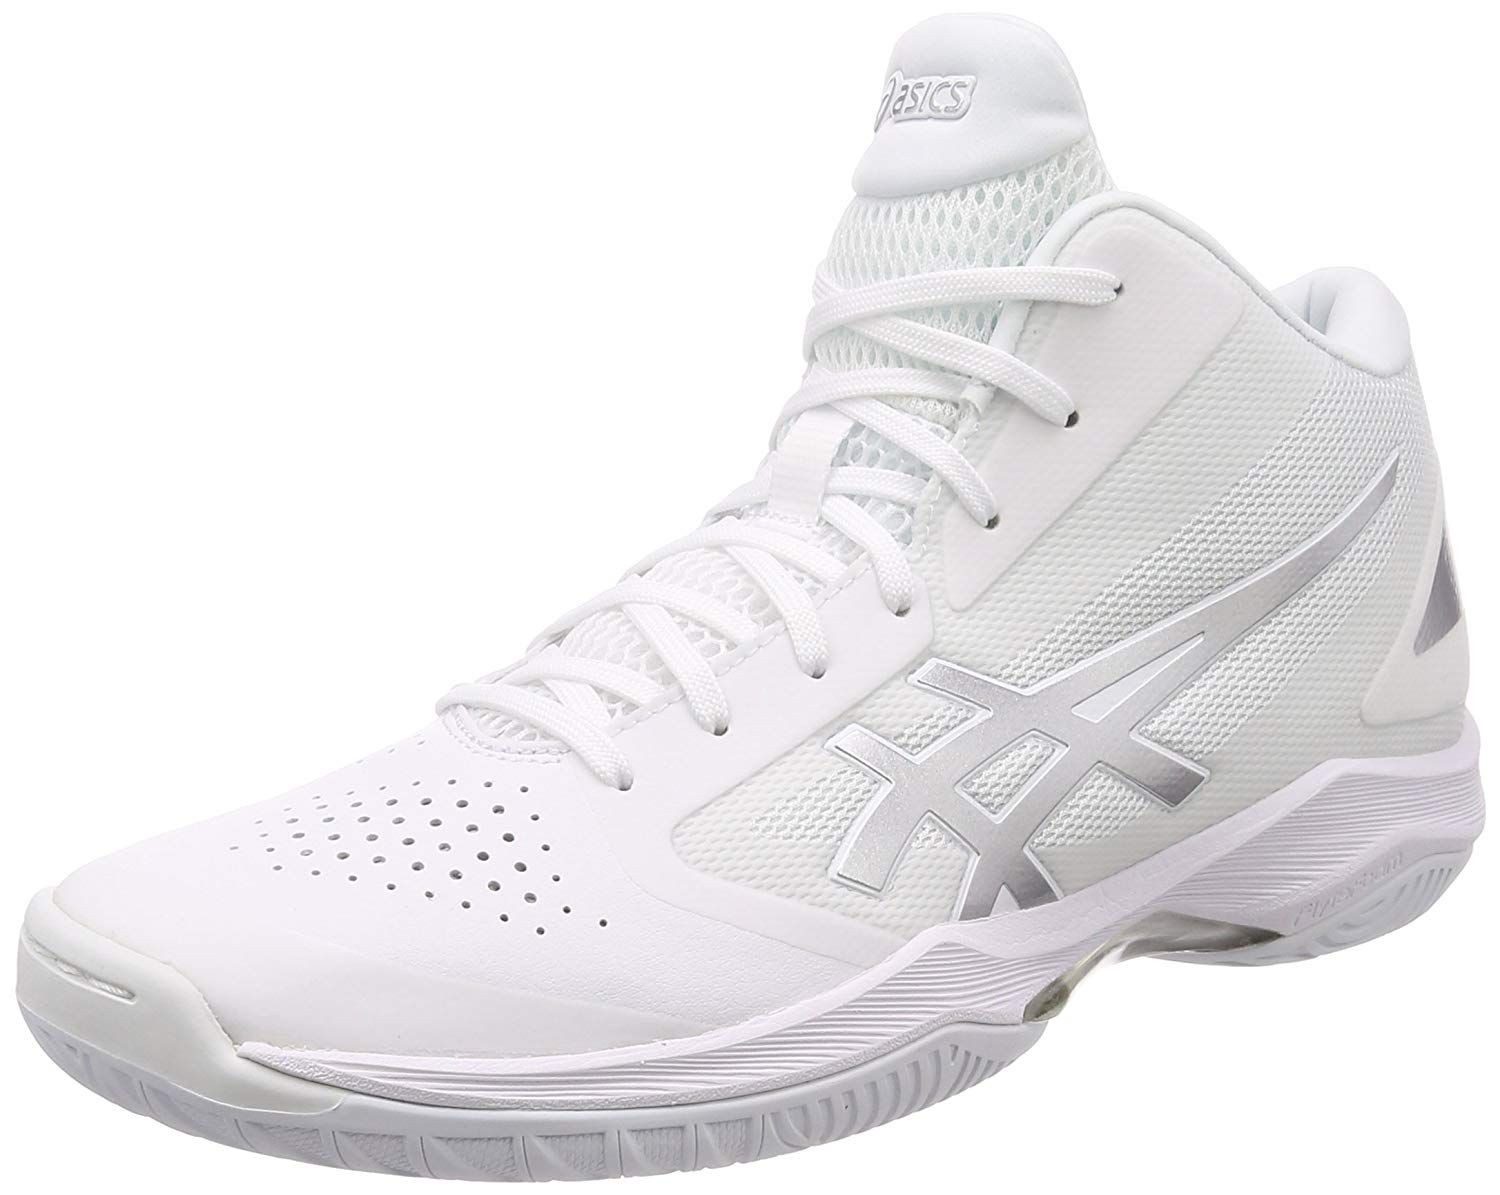 Buy The New Designer Asics Men's Basketball shoes With Sales